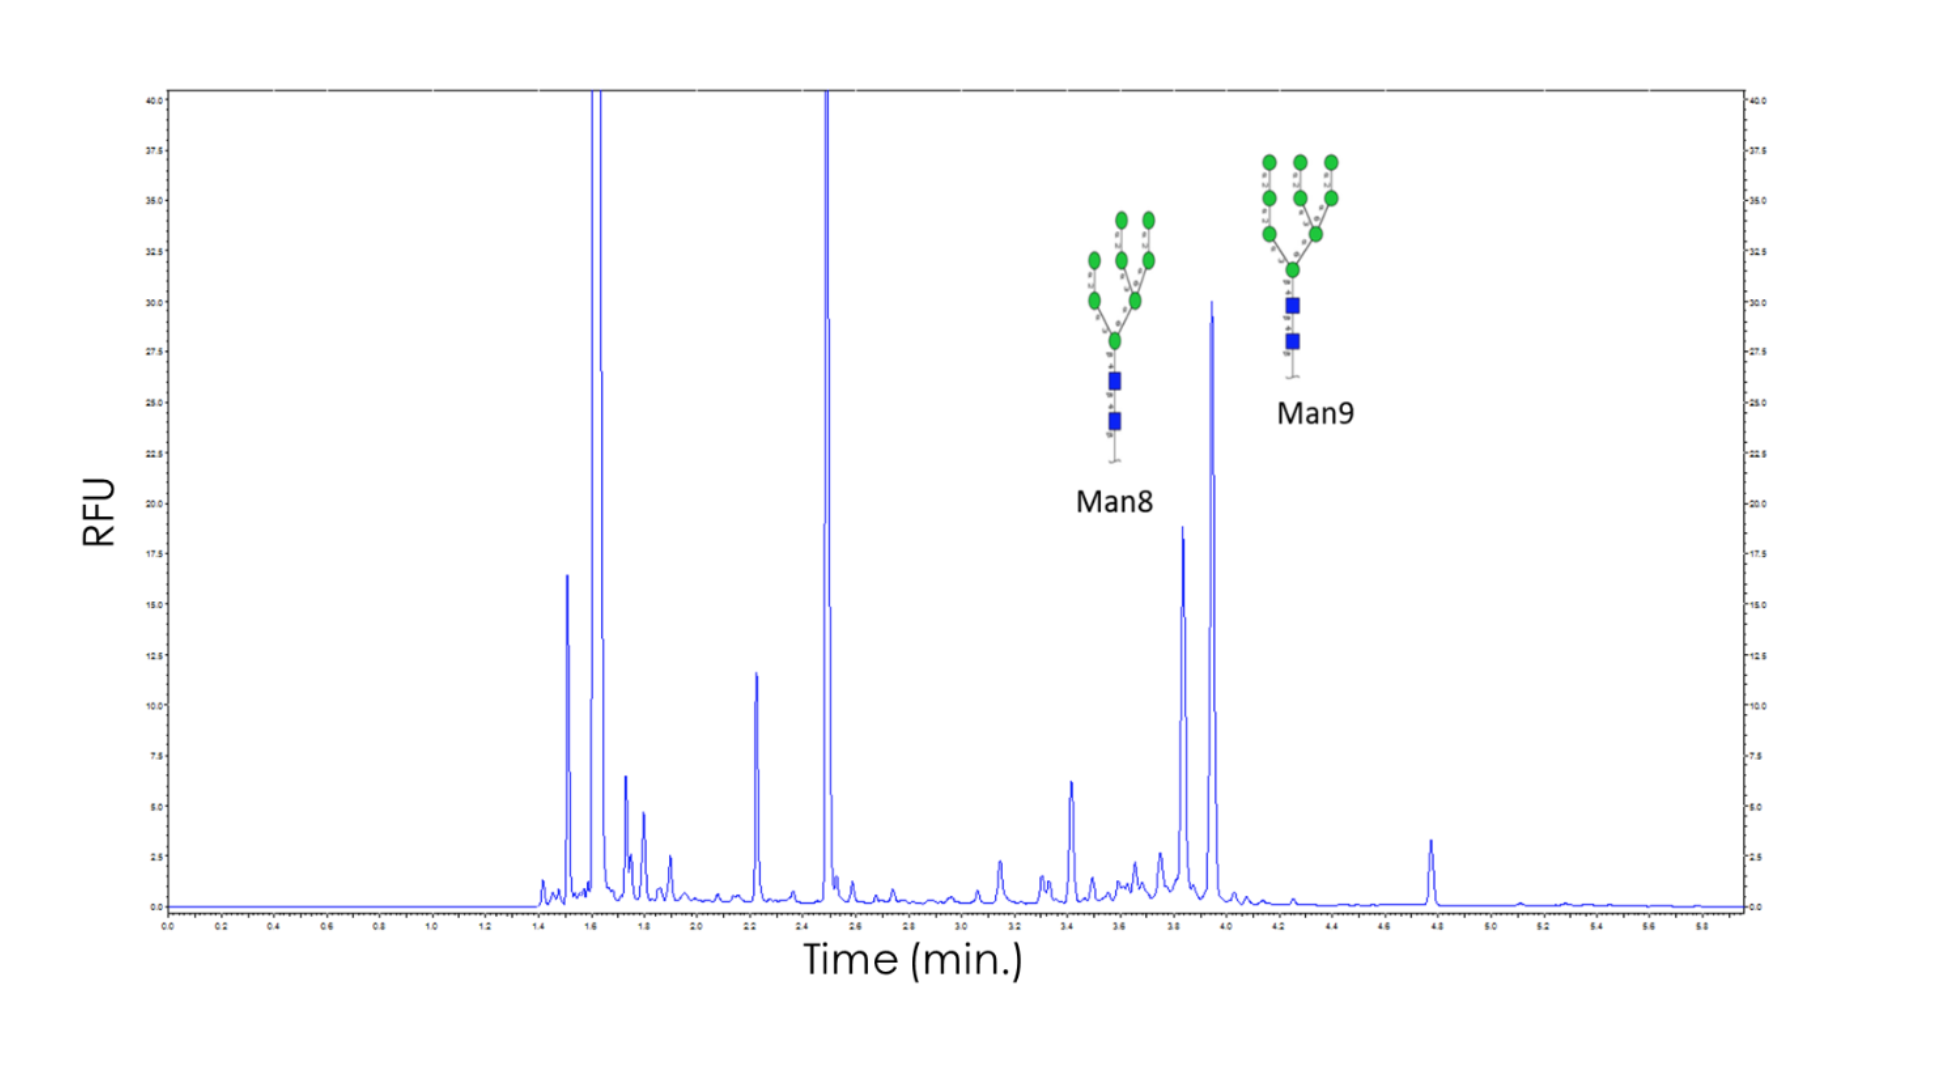 N-glycan profiling spectrometer chart - released glycan analysis